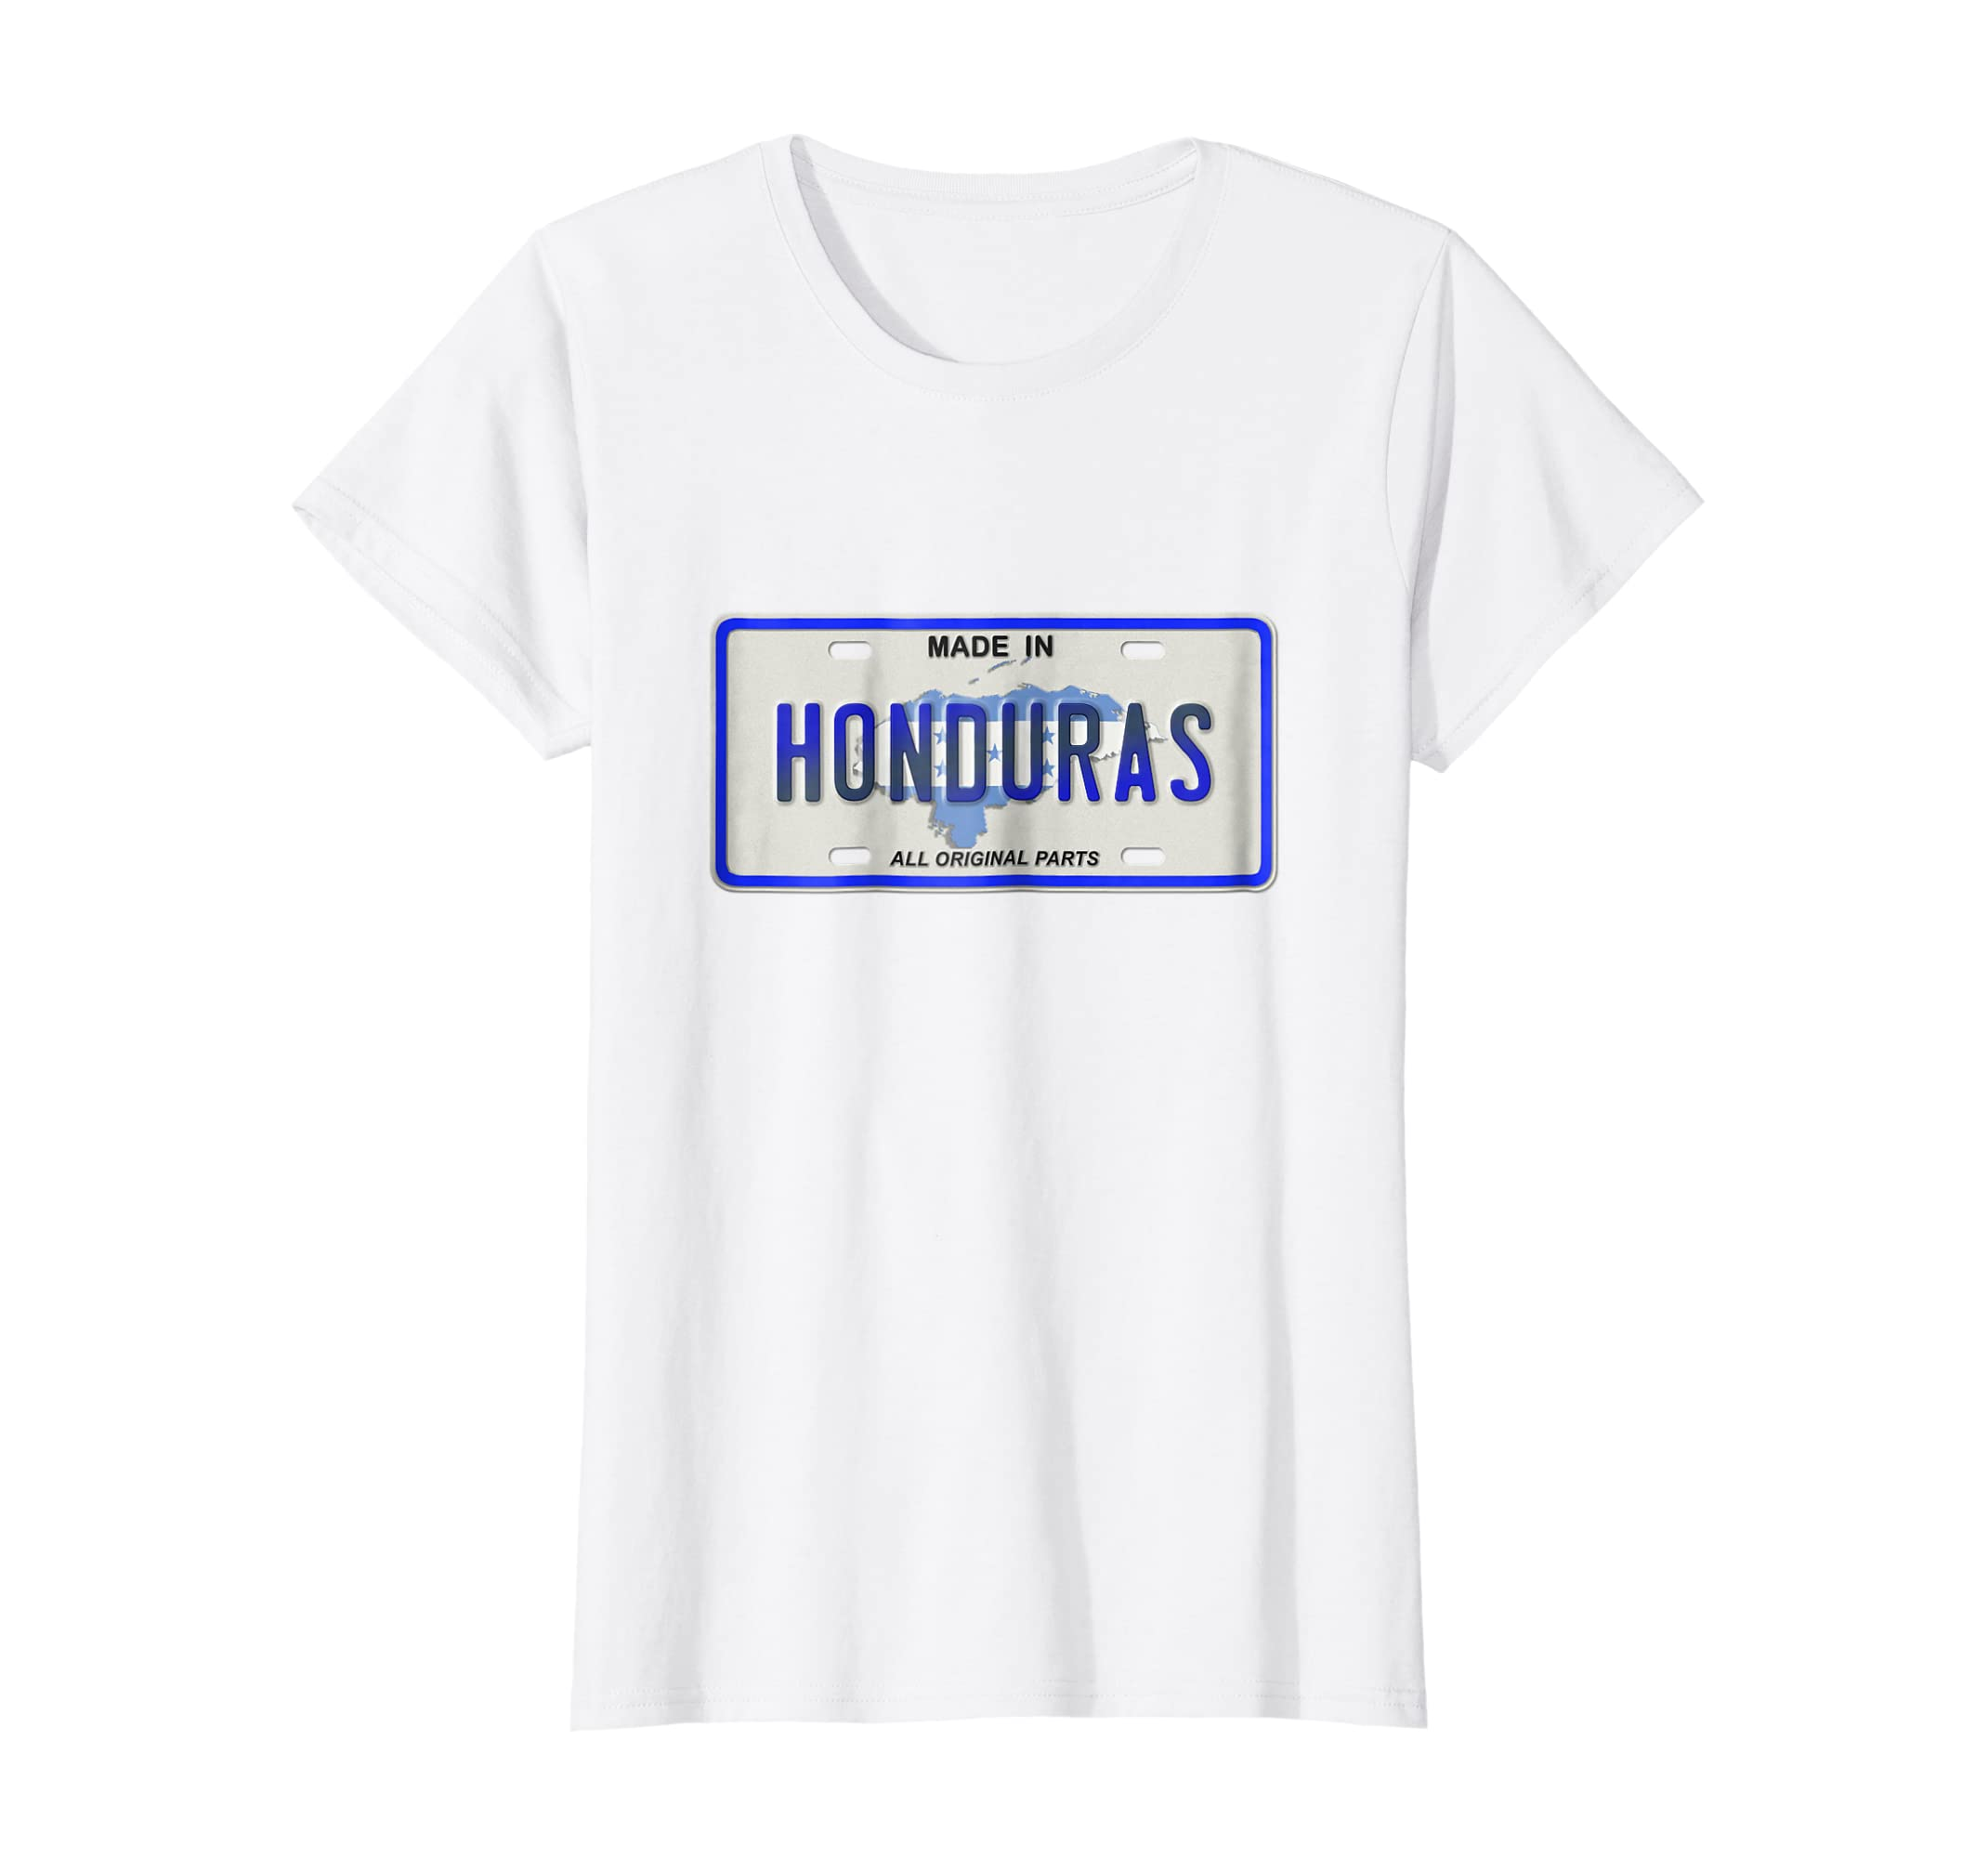 Amazon.com: Made in Honduras shirt Catracho tshirt Camiseta de Placa: Clothing